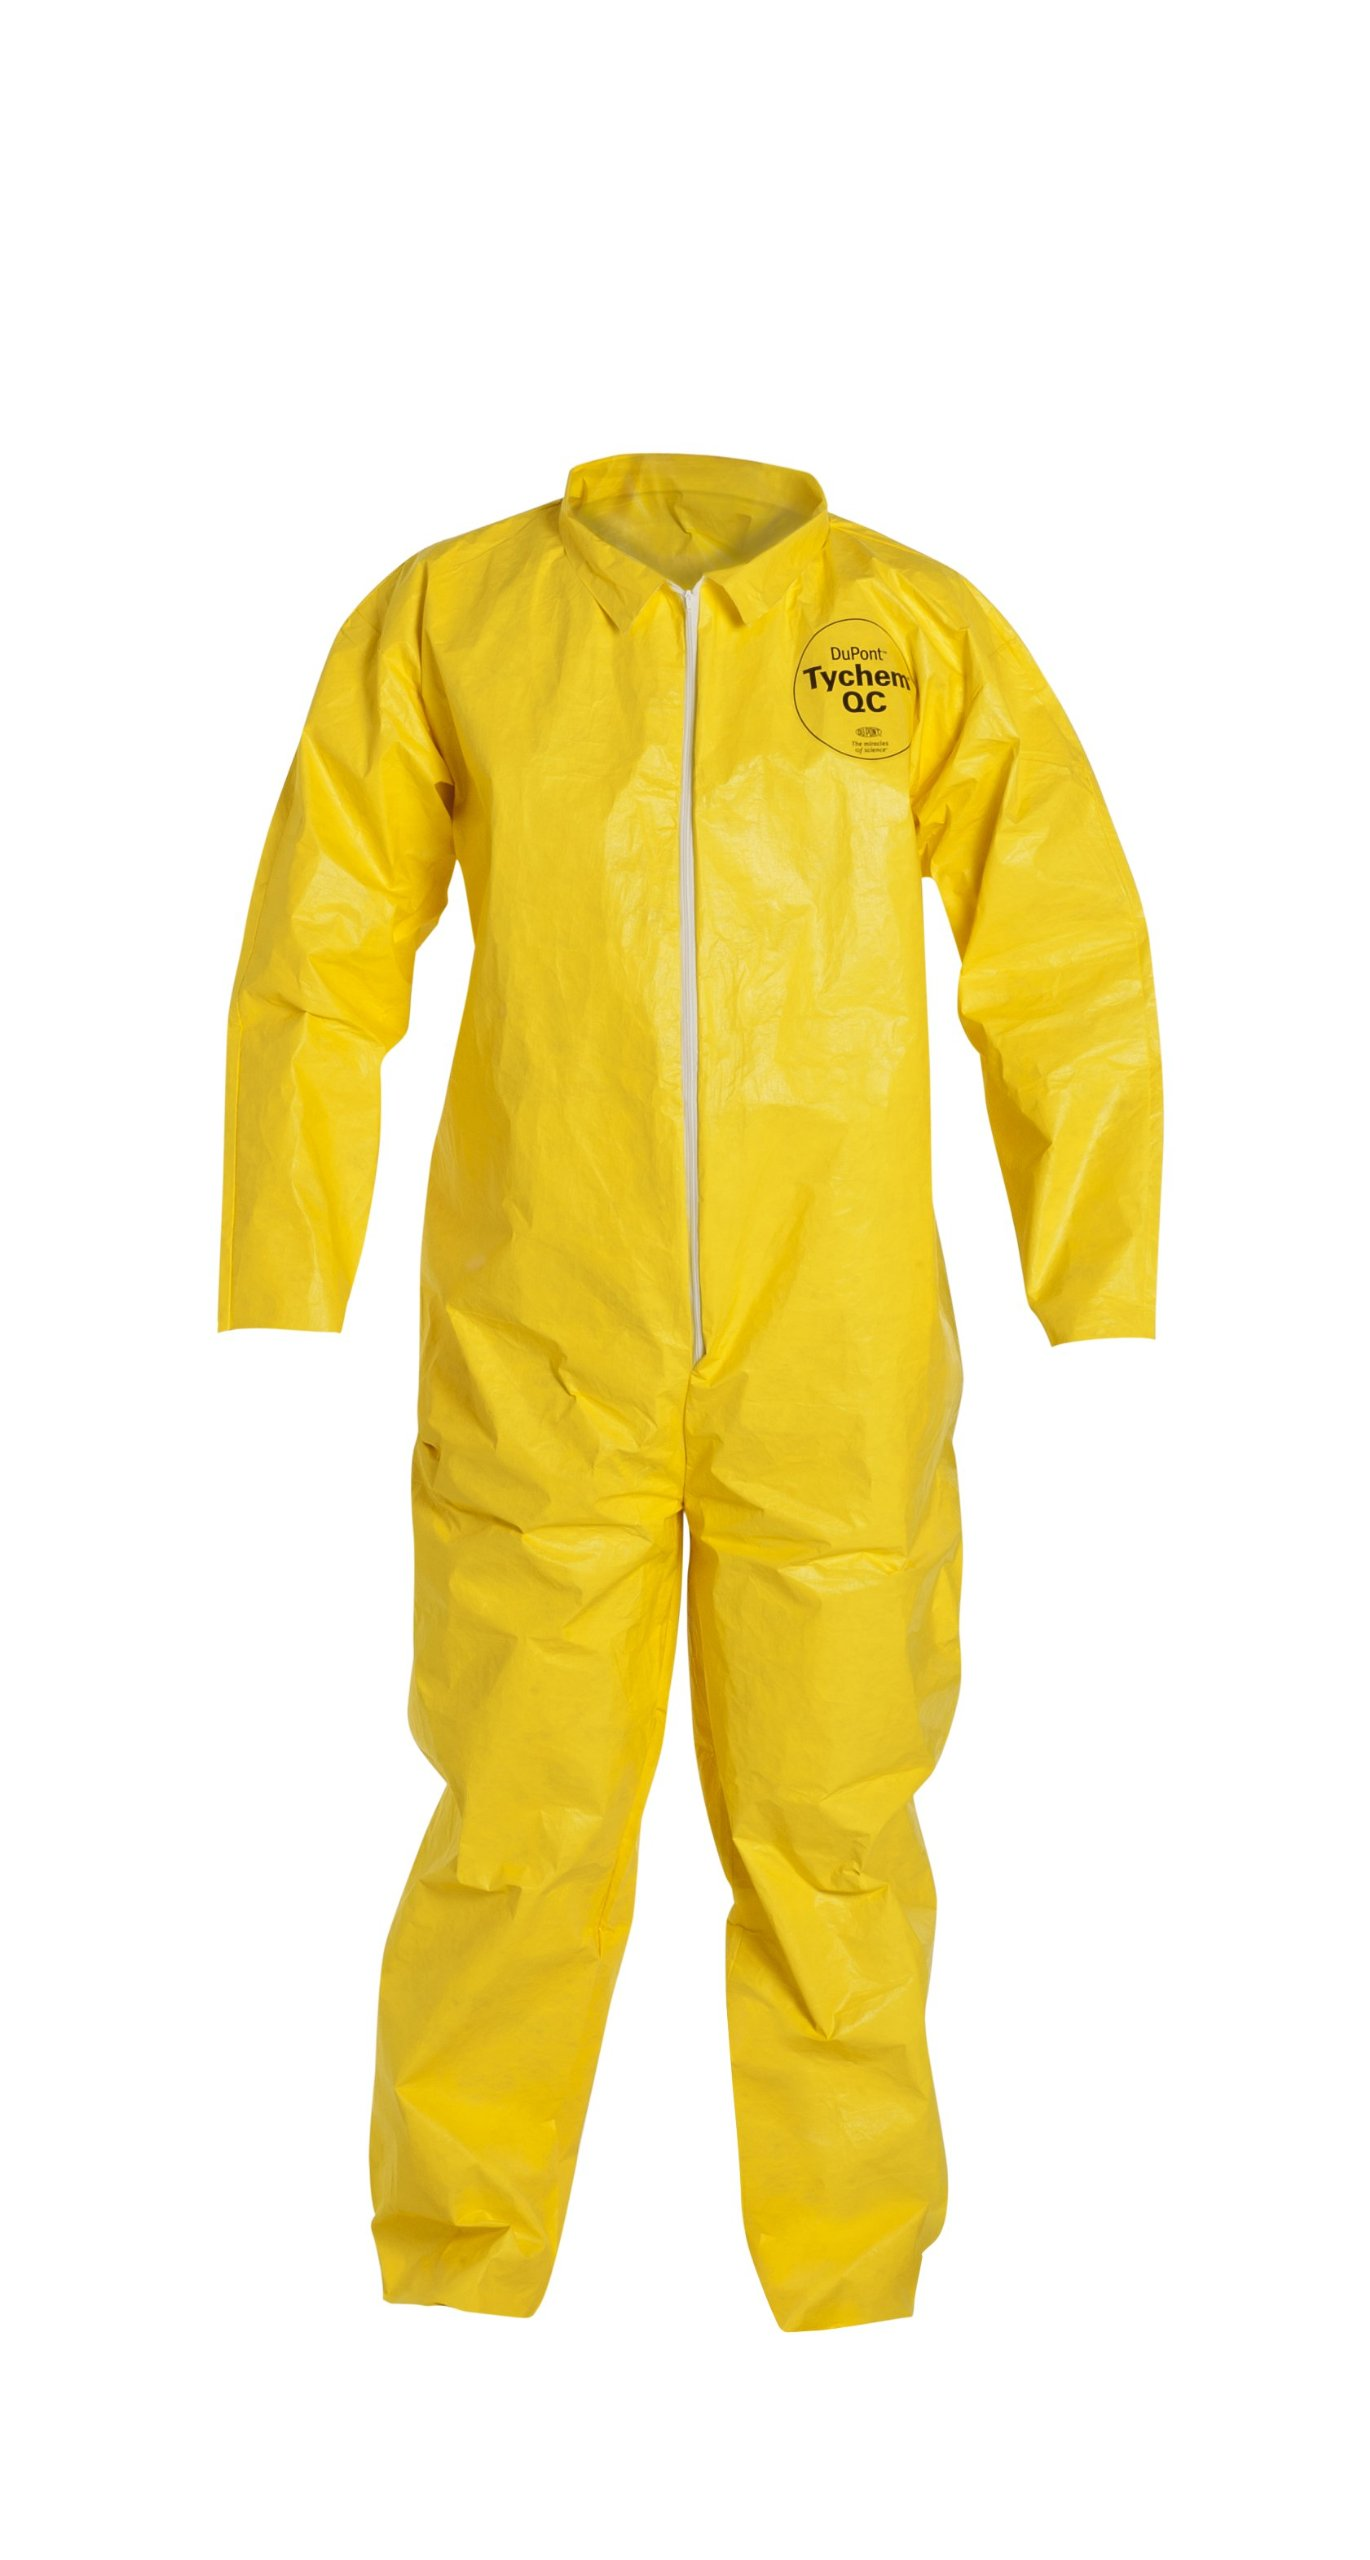 DuPont Tychem 2000 QC120S Disposable Chemical Resistant Coverall with Serged Seams and Open Cuff, Yellow, Medium (Pack of 12)